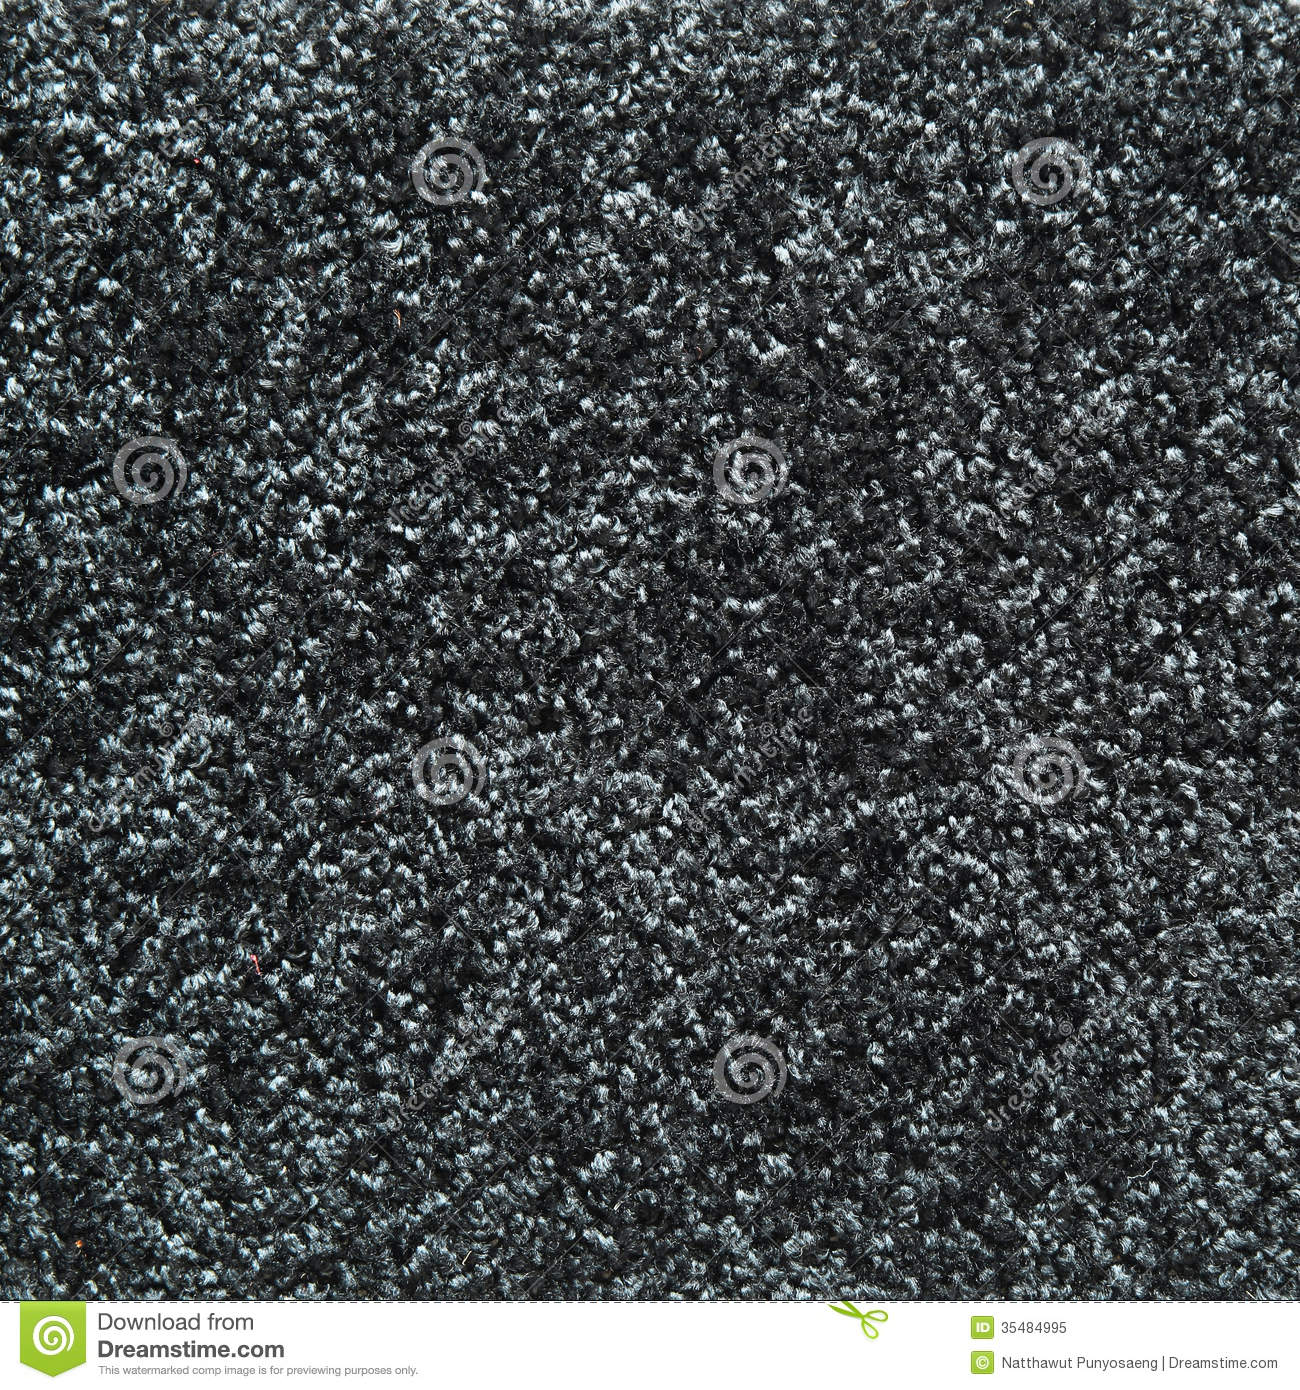 Black Carpet Texture Stock Image. Image Of Abstract, Blank